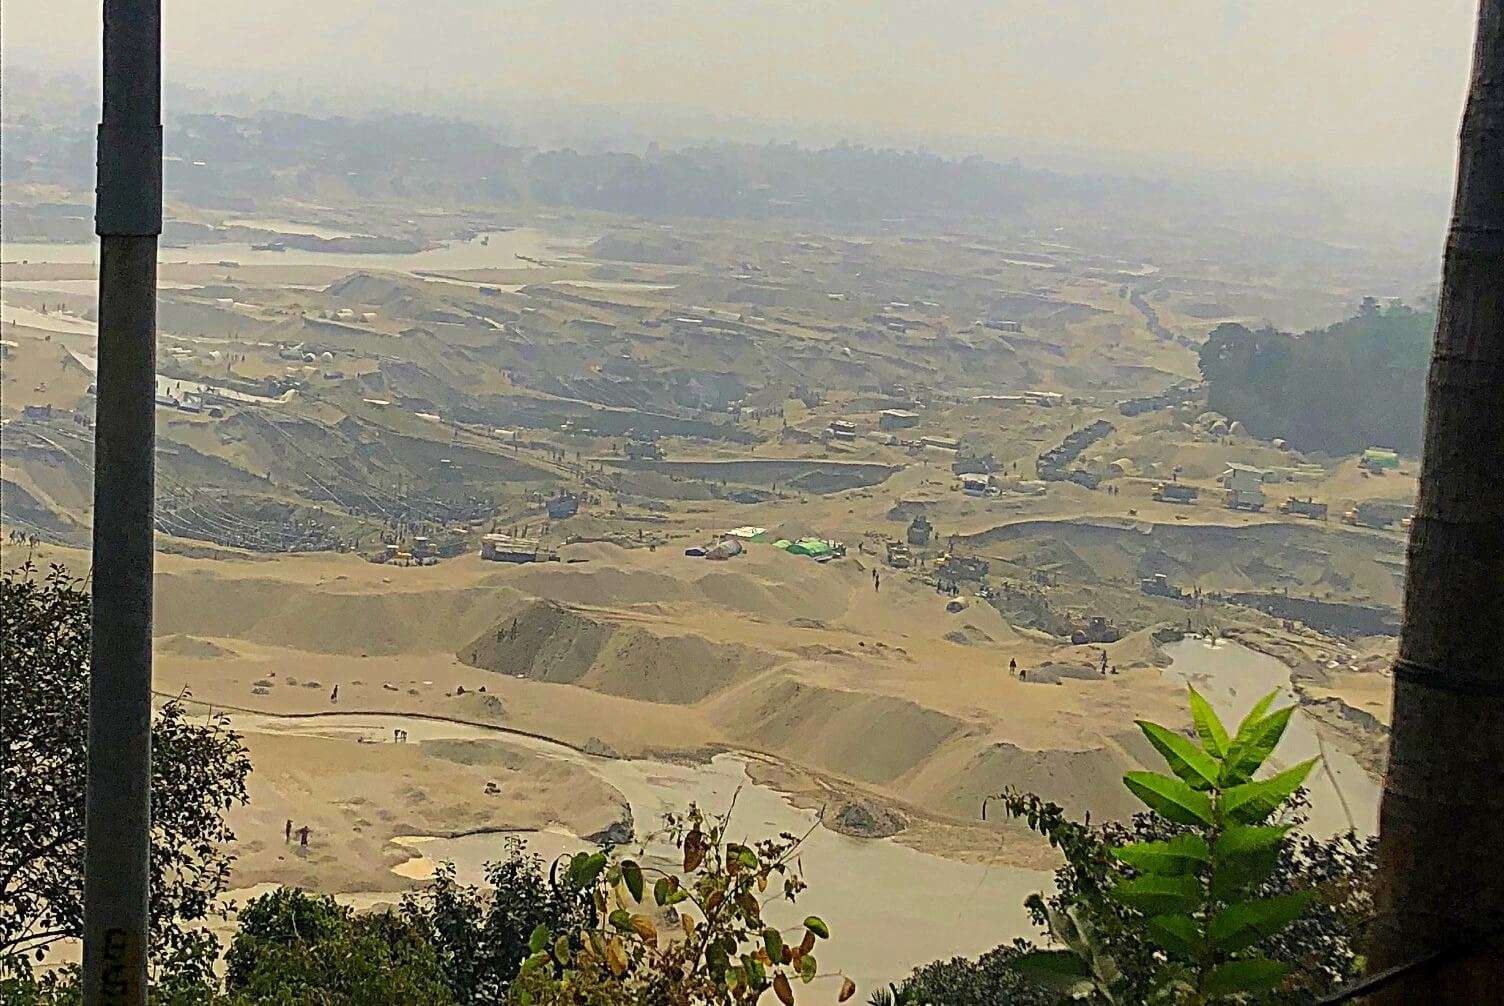 North east of Khasi hills